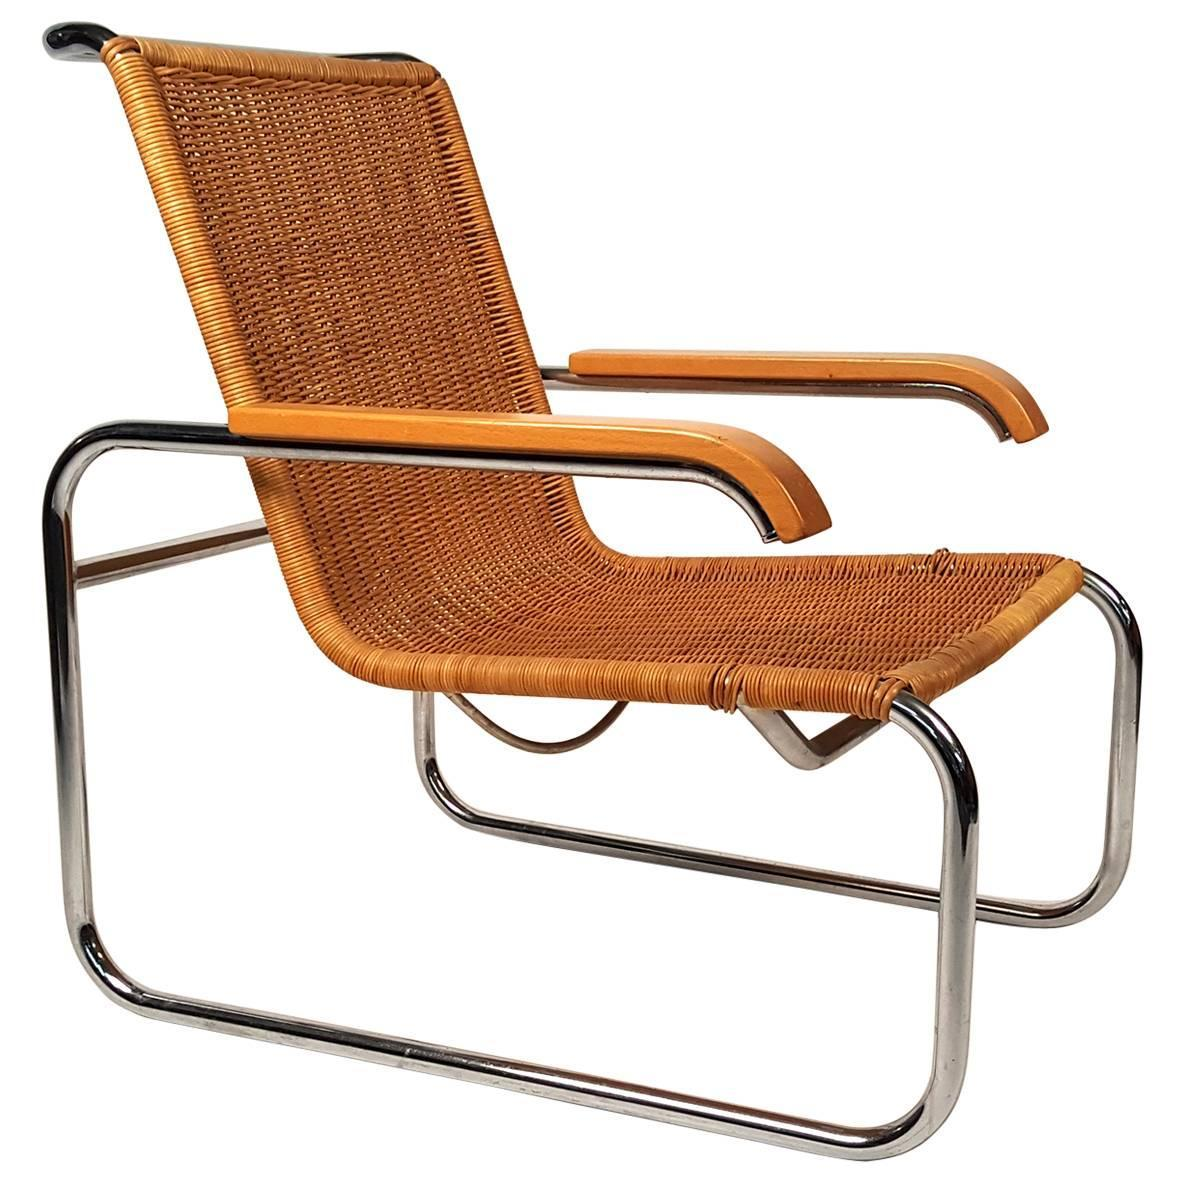 marcel breuer b 35 lounge chair for sale at 1stdibs. Black Bedroom Furniture Sets. Home Design Ideas